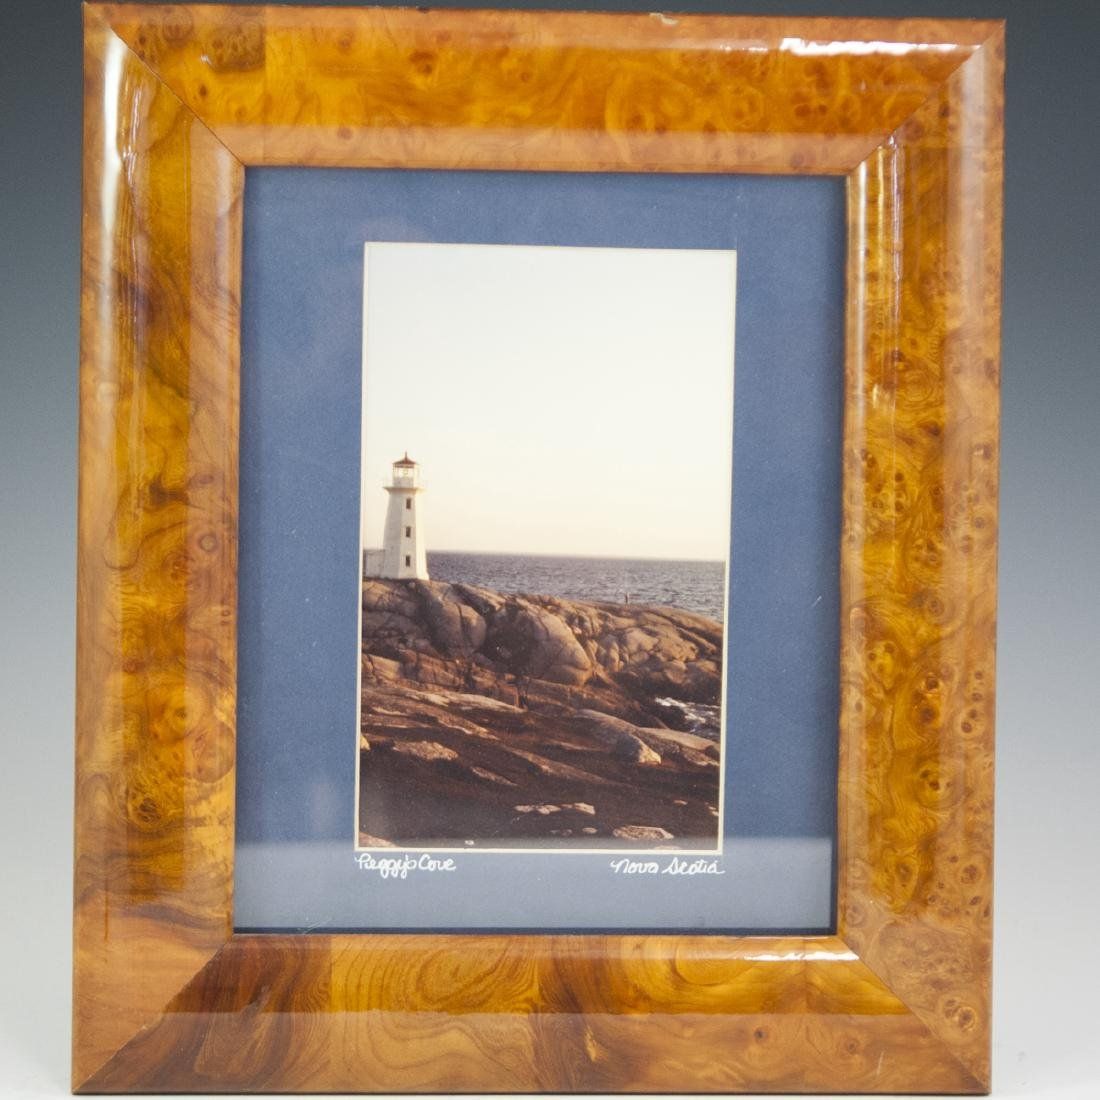 Framed Photograph of Peggy's Cove Nova Scotia